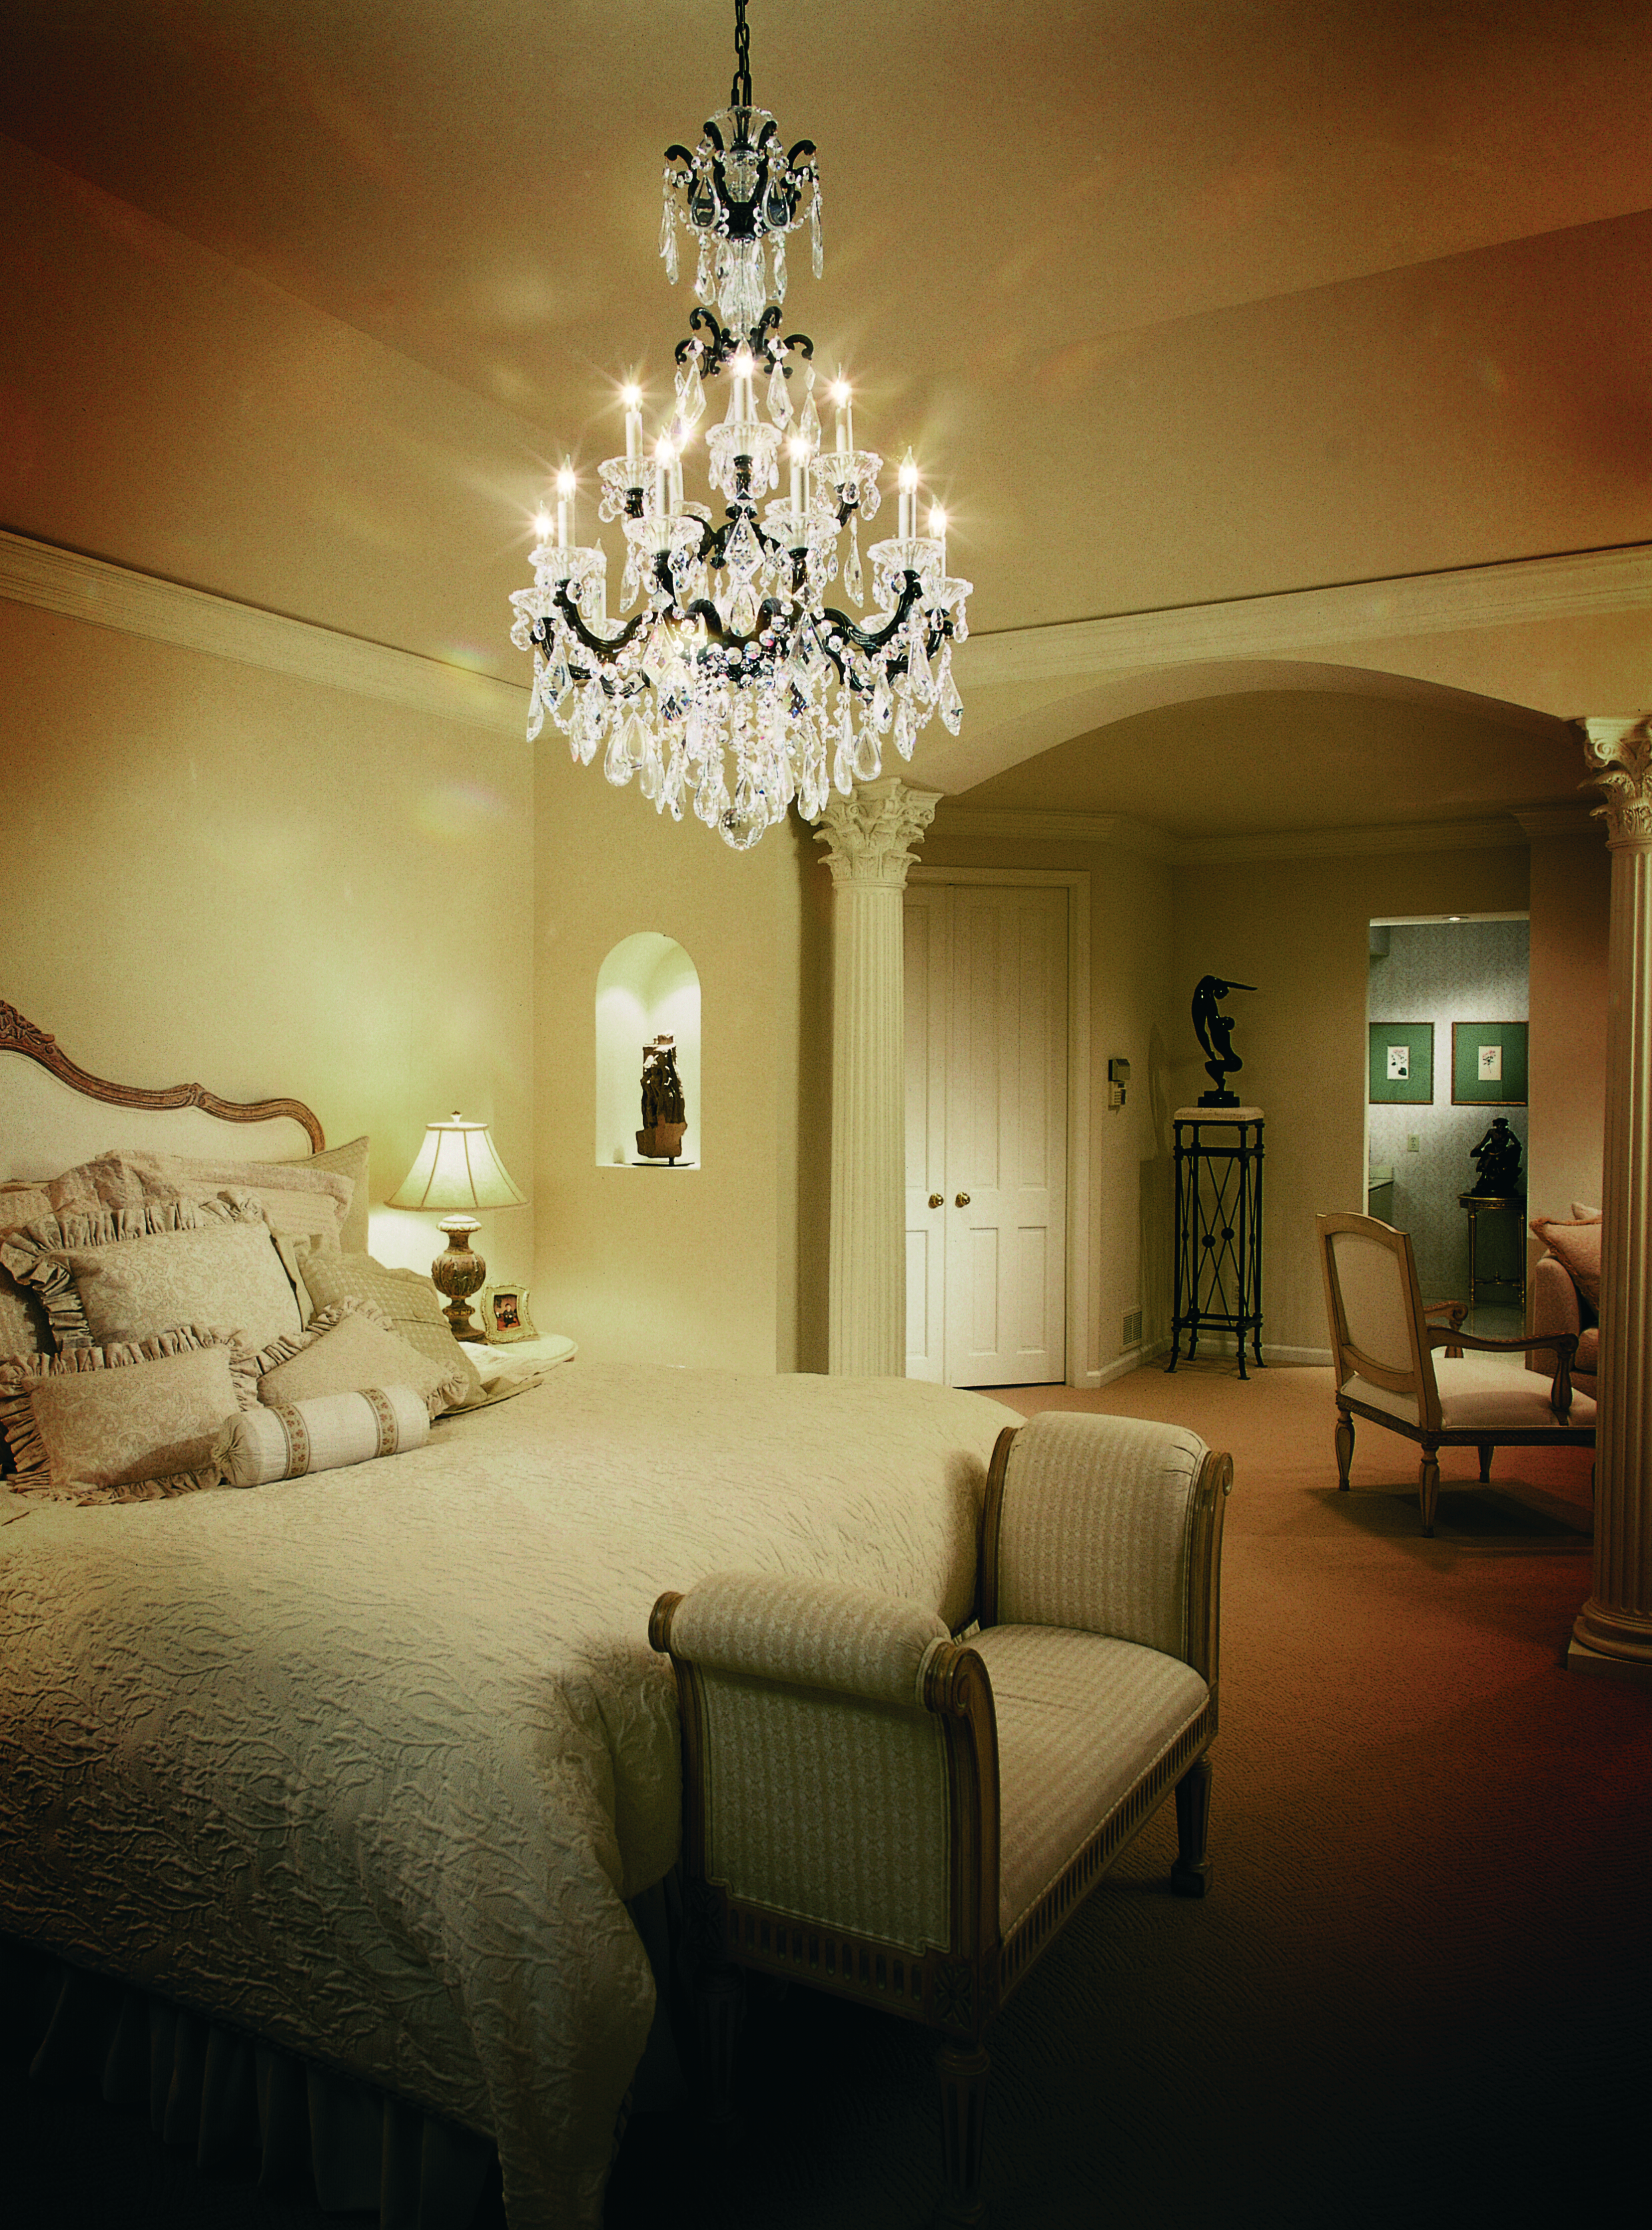 Make a grand statement with chandeliers in the bedroom ...